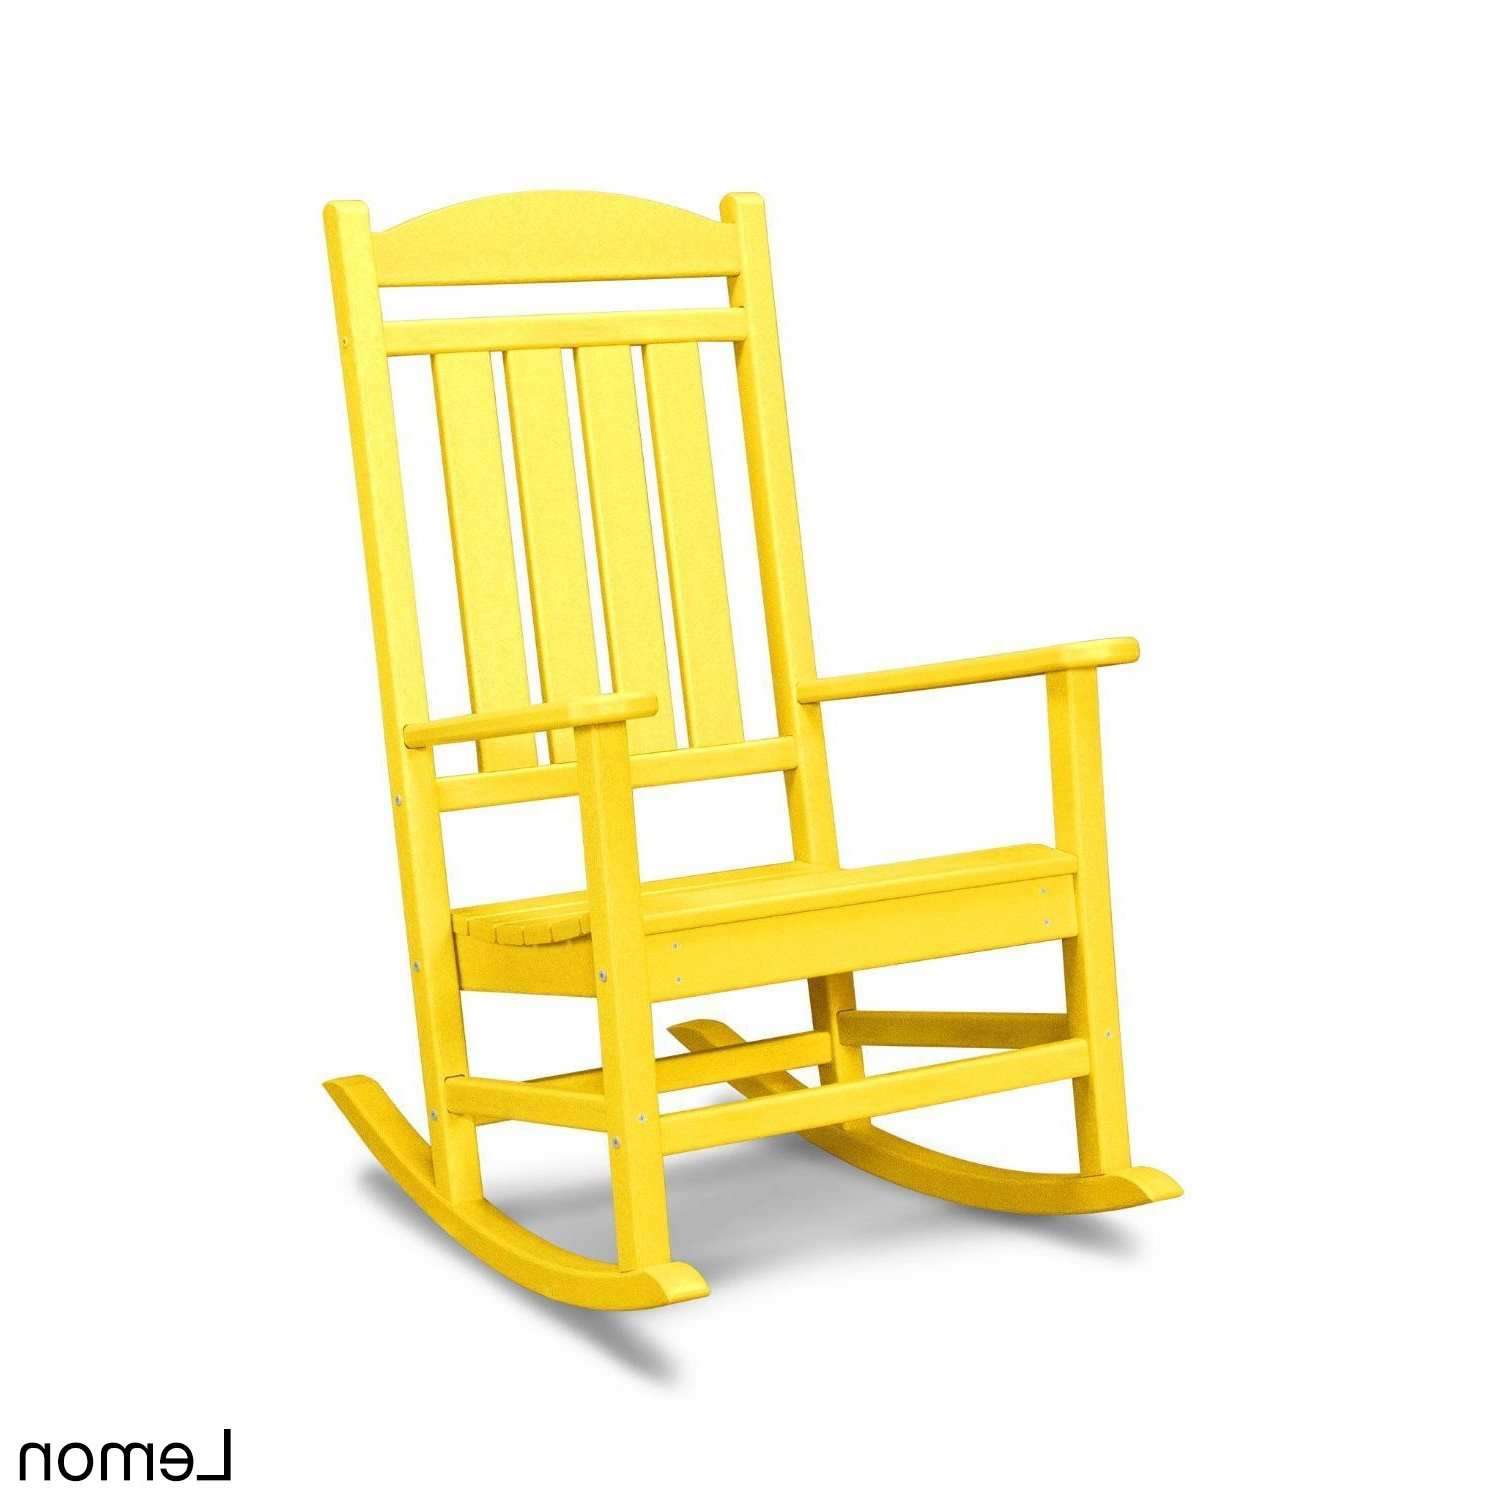 Shop Polywood Presidential Outdoor Rocking Chair – Free Shipping Inside Most Recently Released Yellow Outdoor Rocking Chairs (View 10 of 15)